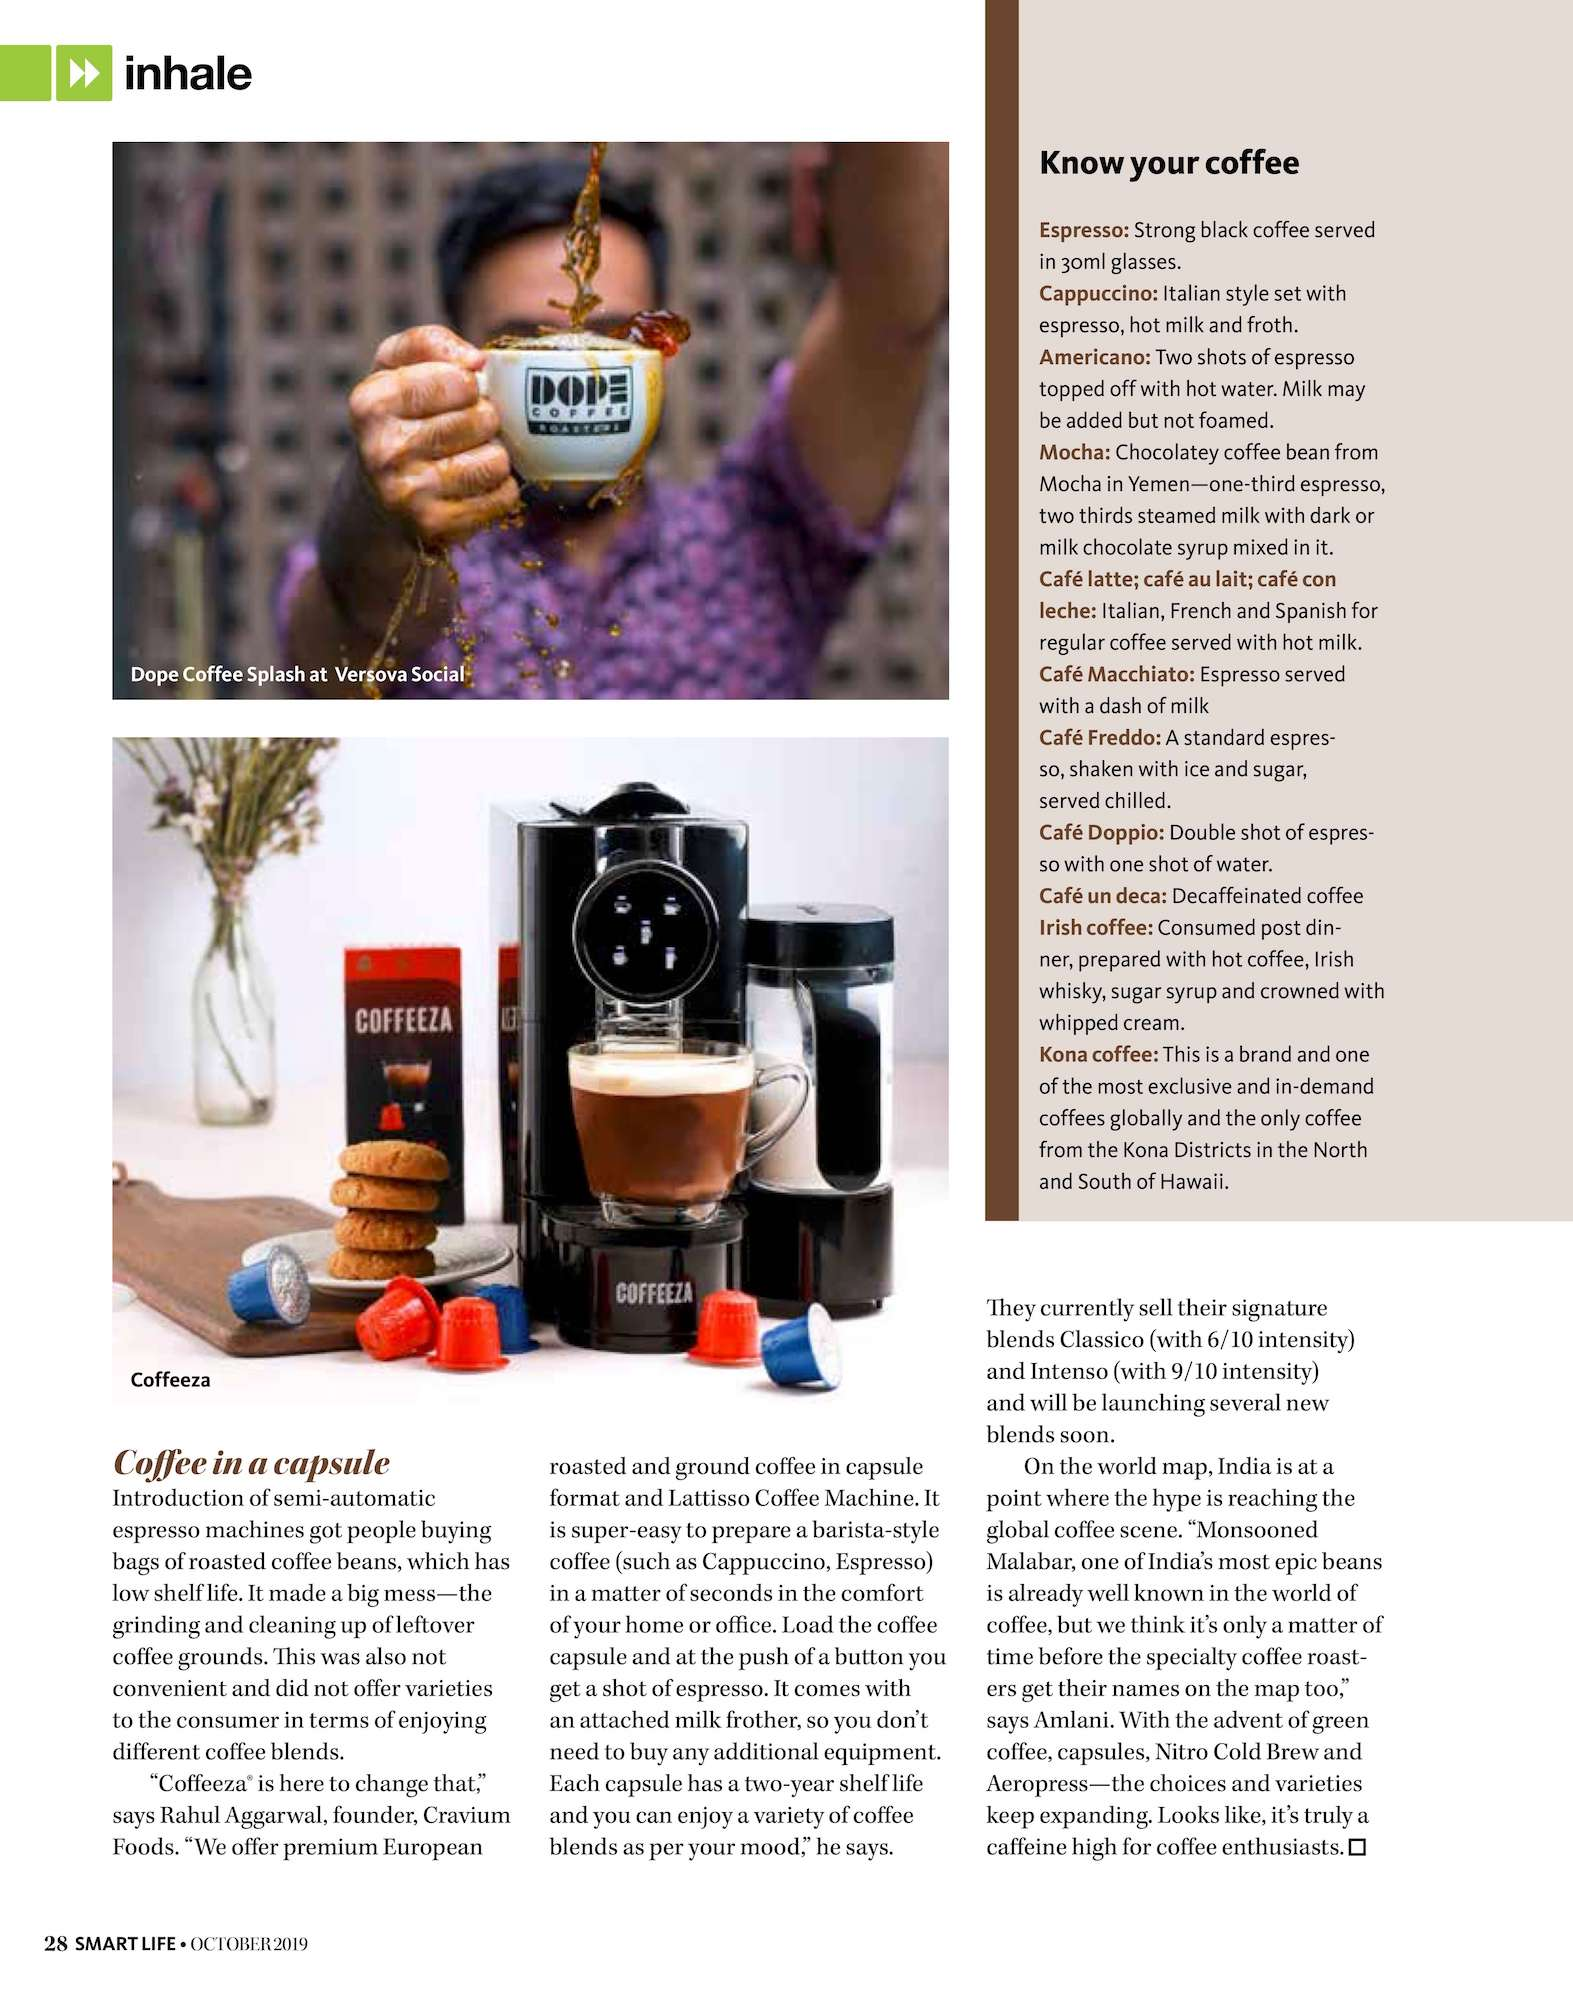 Smart Life Magazine October 2019 Coffeeza Article